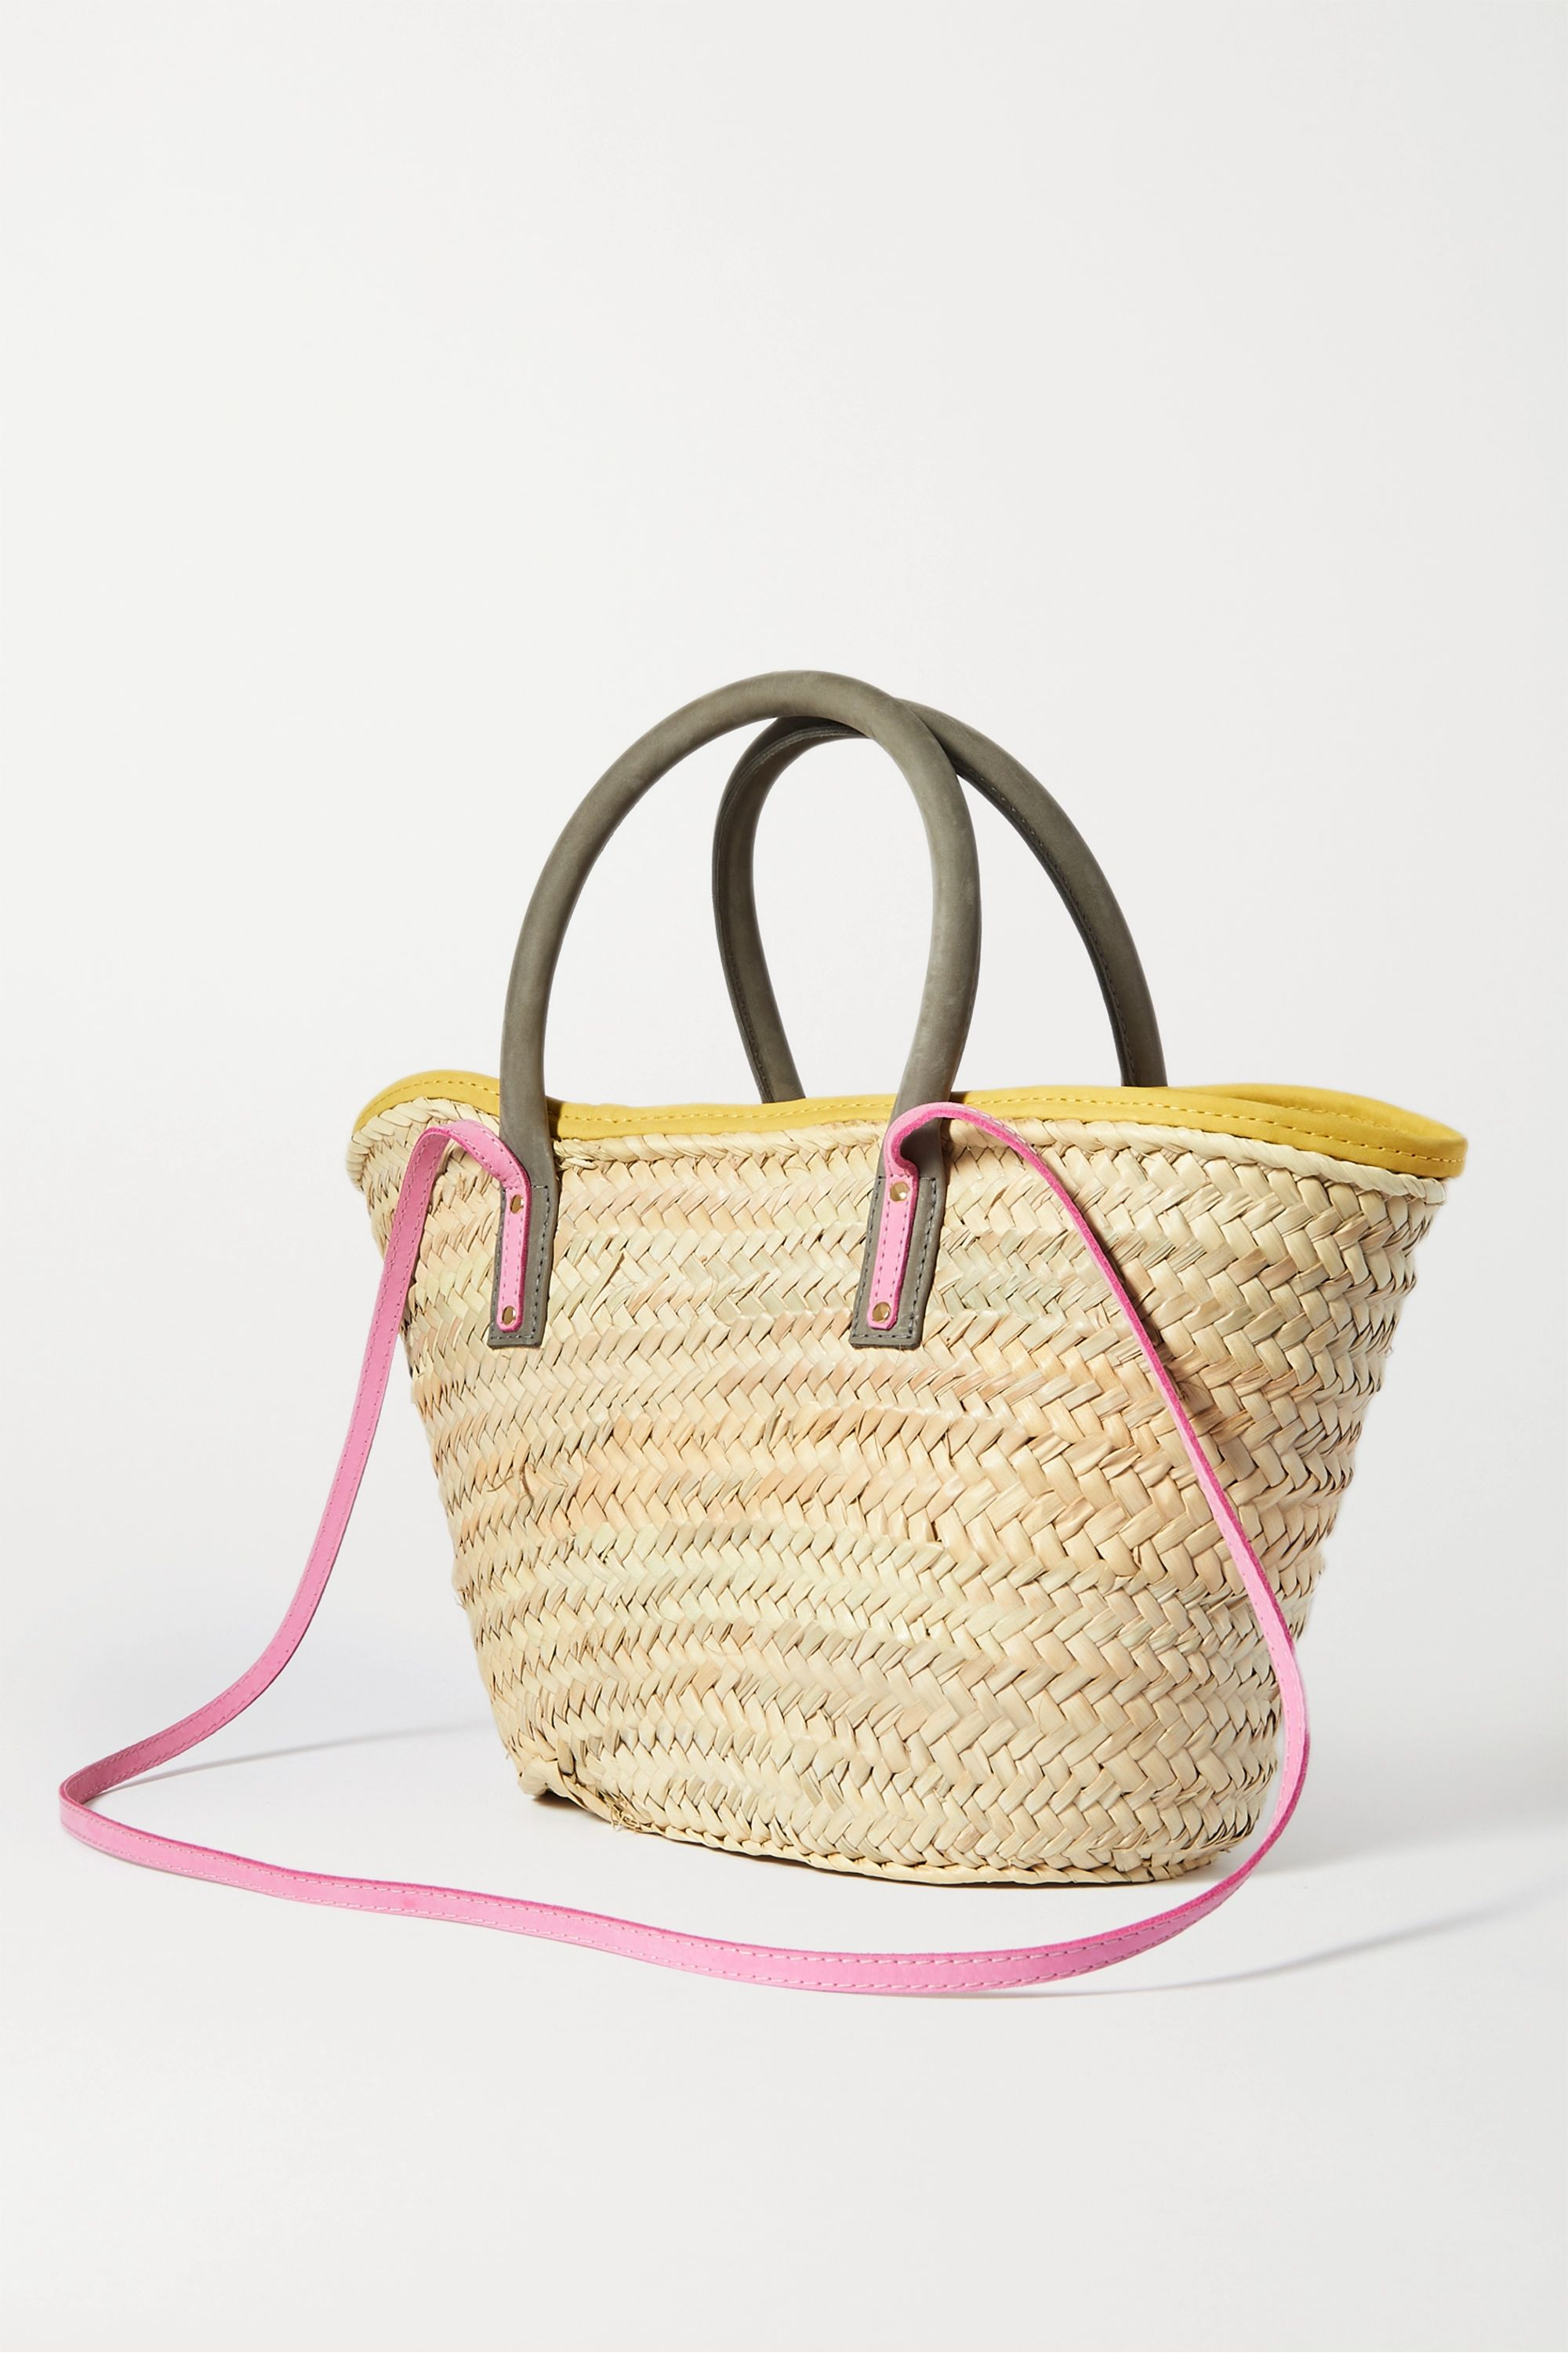 Jacquemus Soleil nubuck-trimmed straw tote